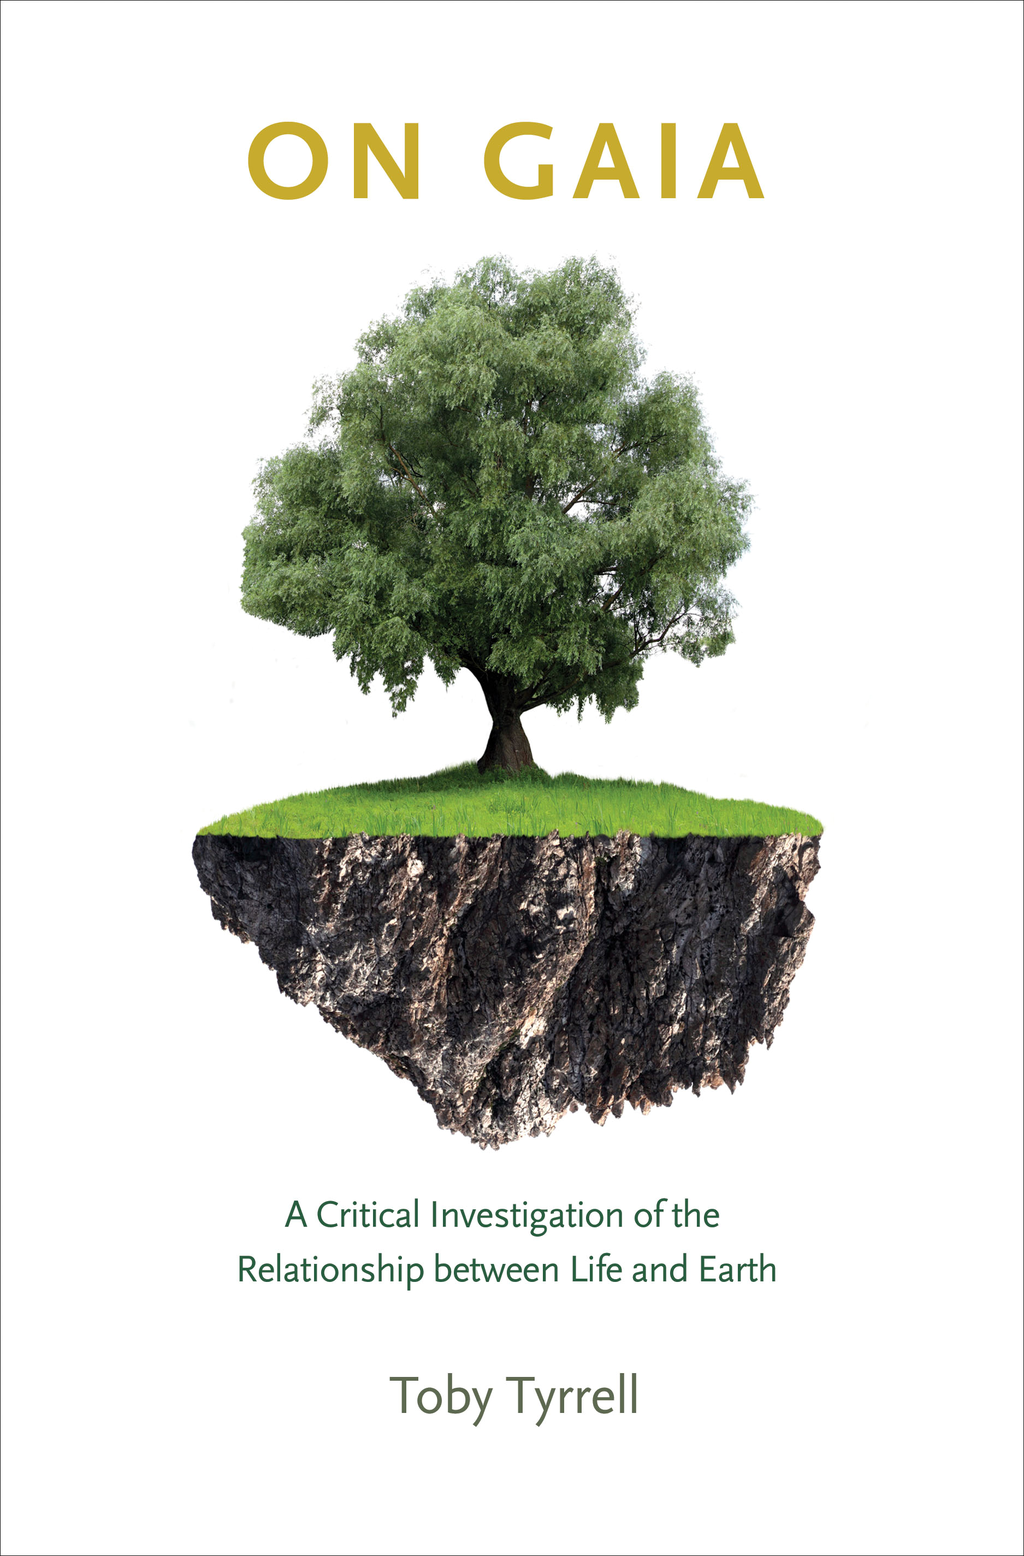 On Gaia A Critical Investigation of the Relationship between Life and Earth